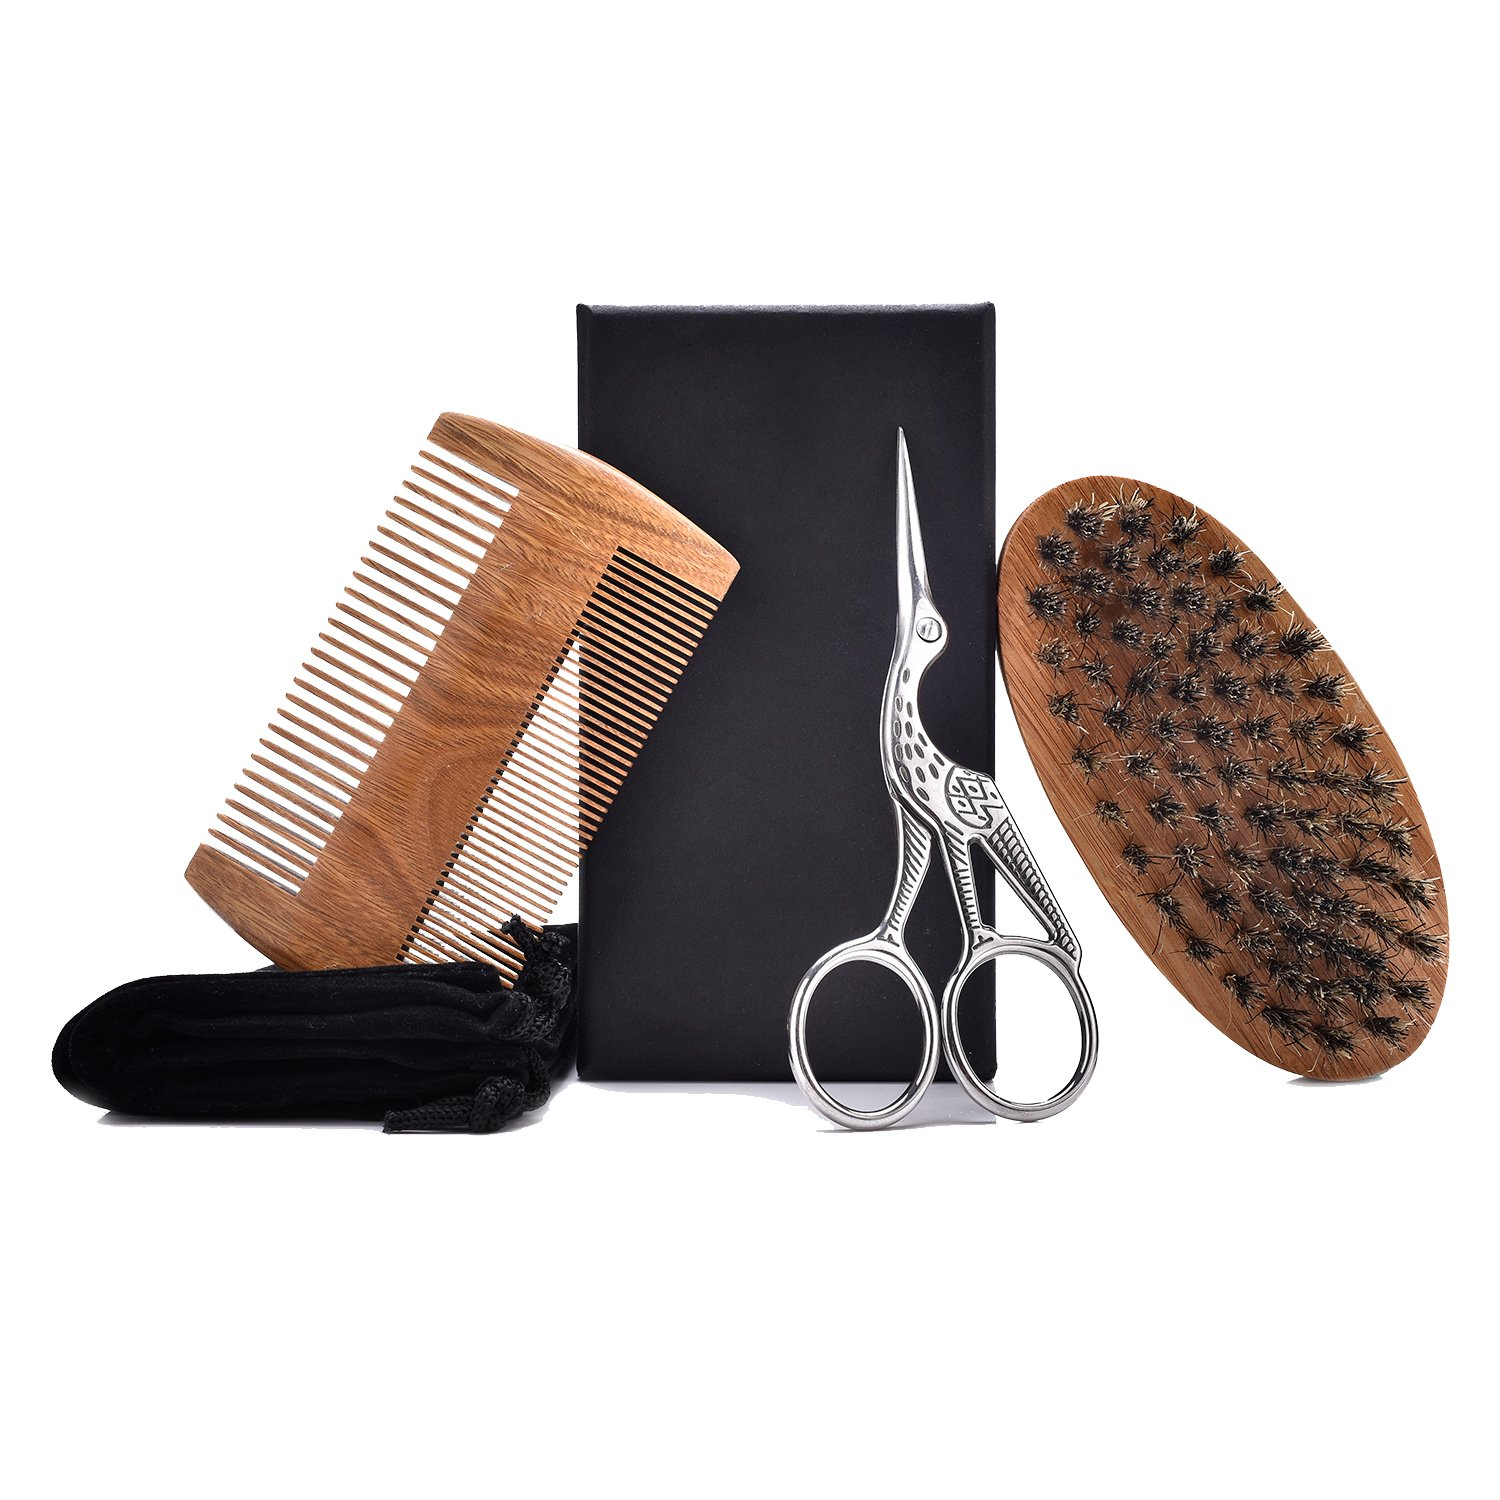 Beard Grooming Kit for Men, Sandalwood Beard Comb, Boar Bristle Beard Brush and Hair Scissors, with Convenient Small Travel Gift Bag,Valentines' Gifts (Brown) Valentines' Gifts (Brown)